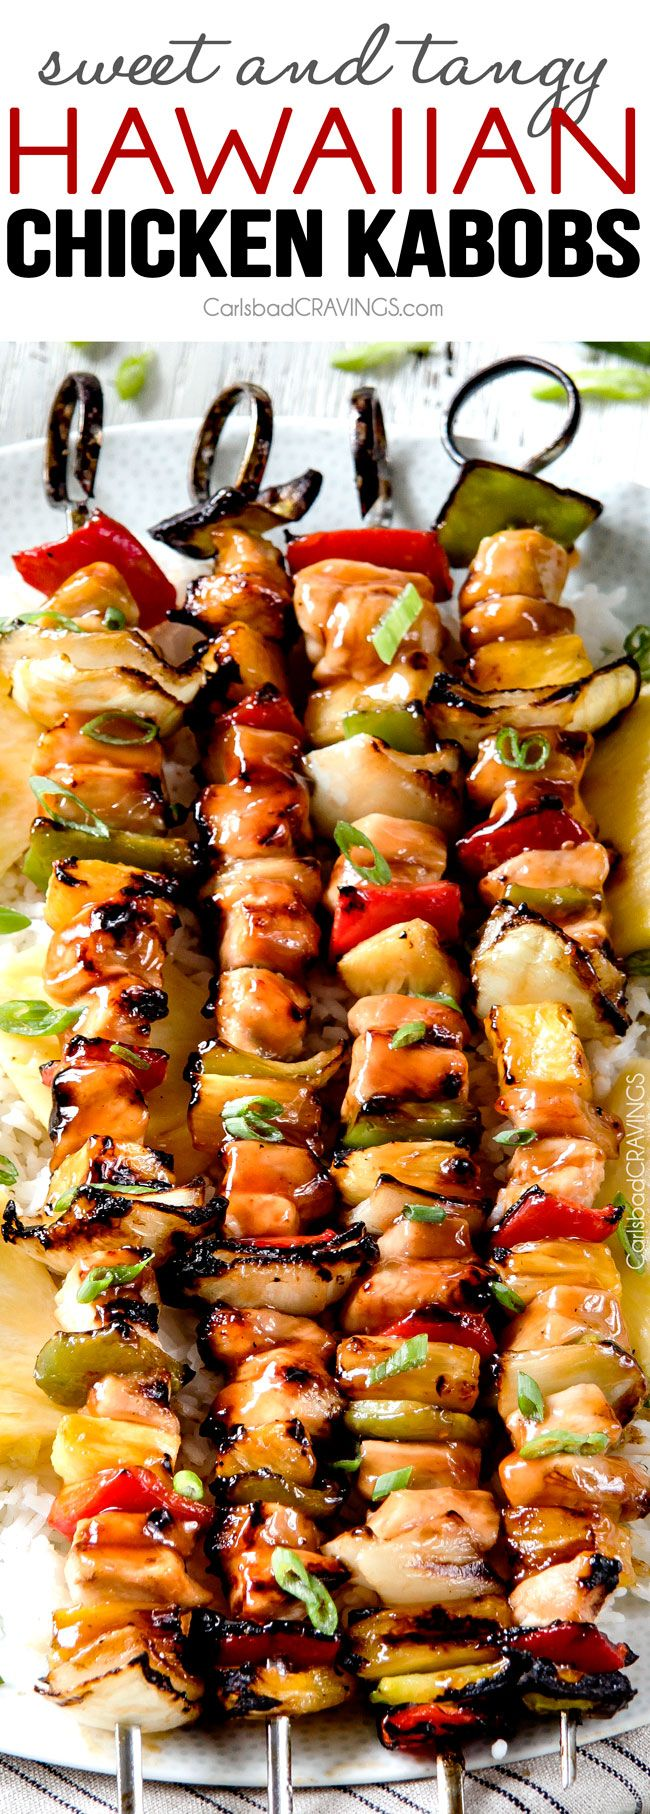 Grilled (or broiled) Hawaiian Chicken Kabobs - this is my new favorite grill recipe! the chicken is so juicy and flavorful and the sweet and sour Hawaiian Sauce (that doubles as a marinade) is out of this world!